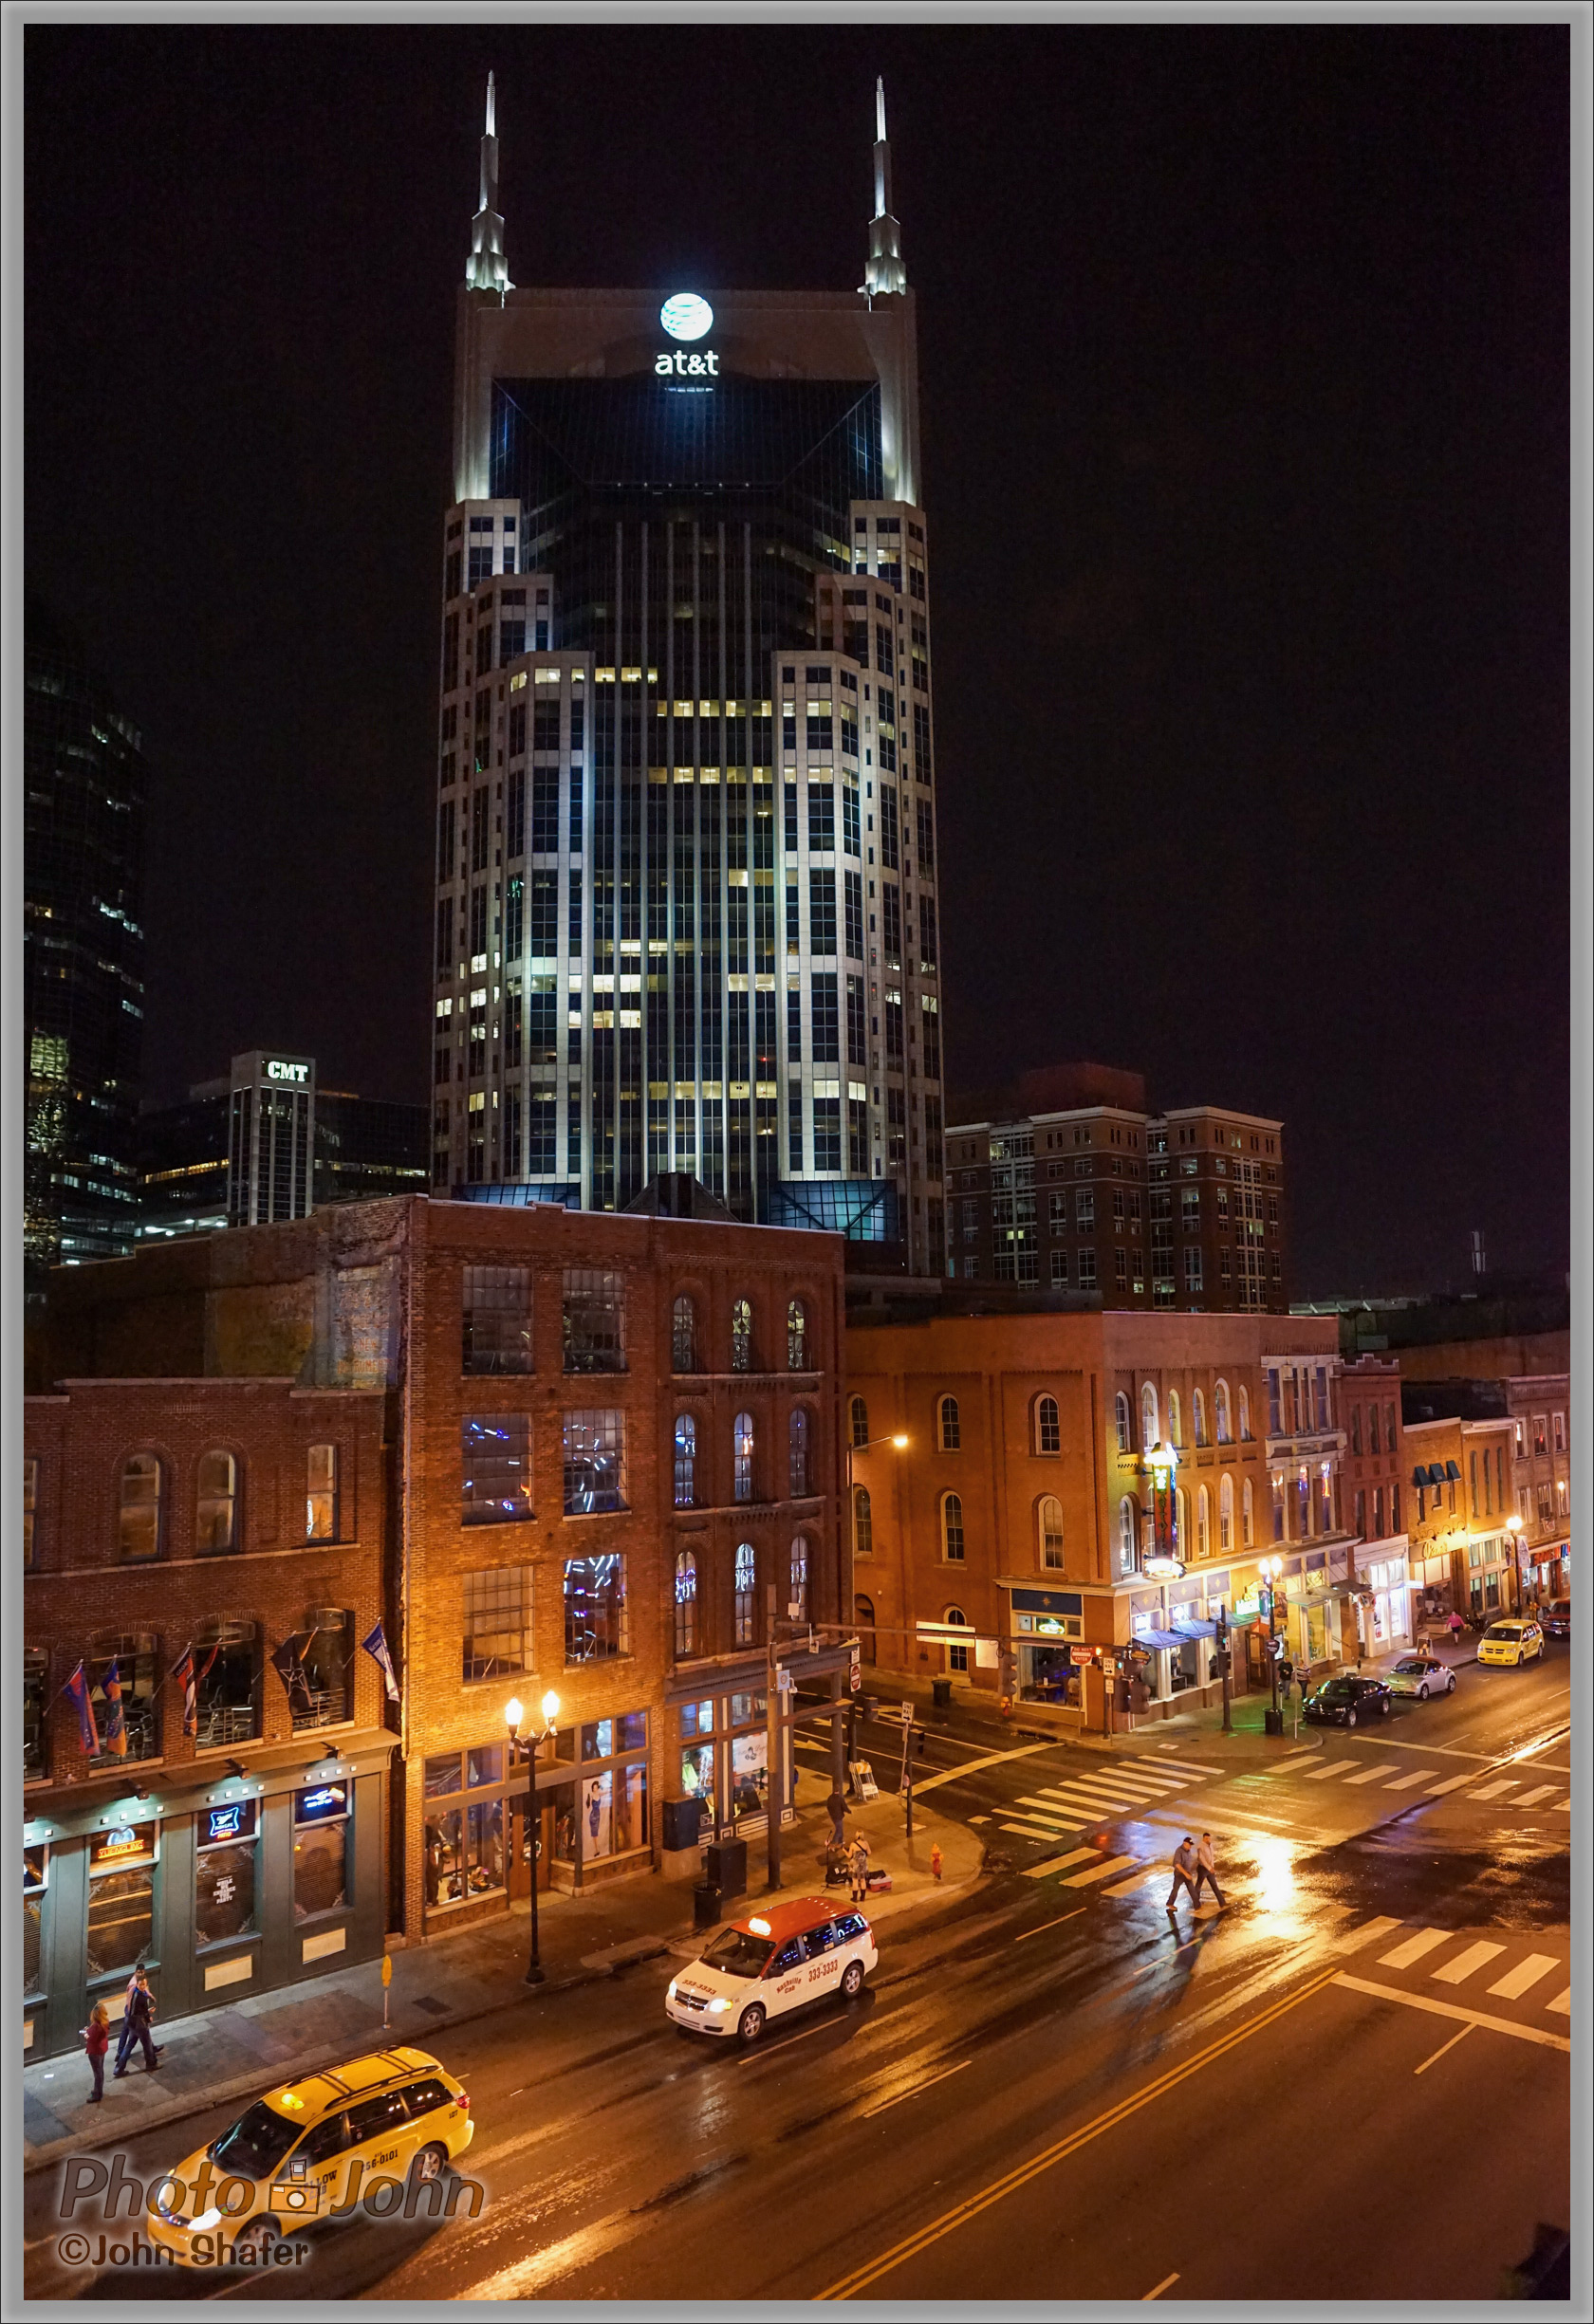 Nashville's Music Row With the AT&T Building In the Background - Sony Alpha A7R